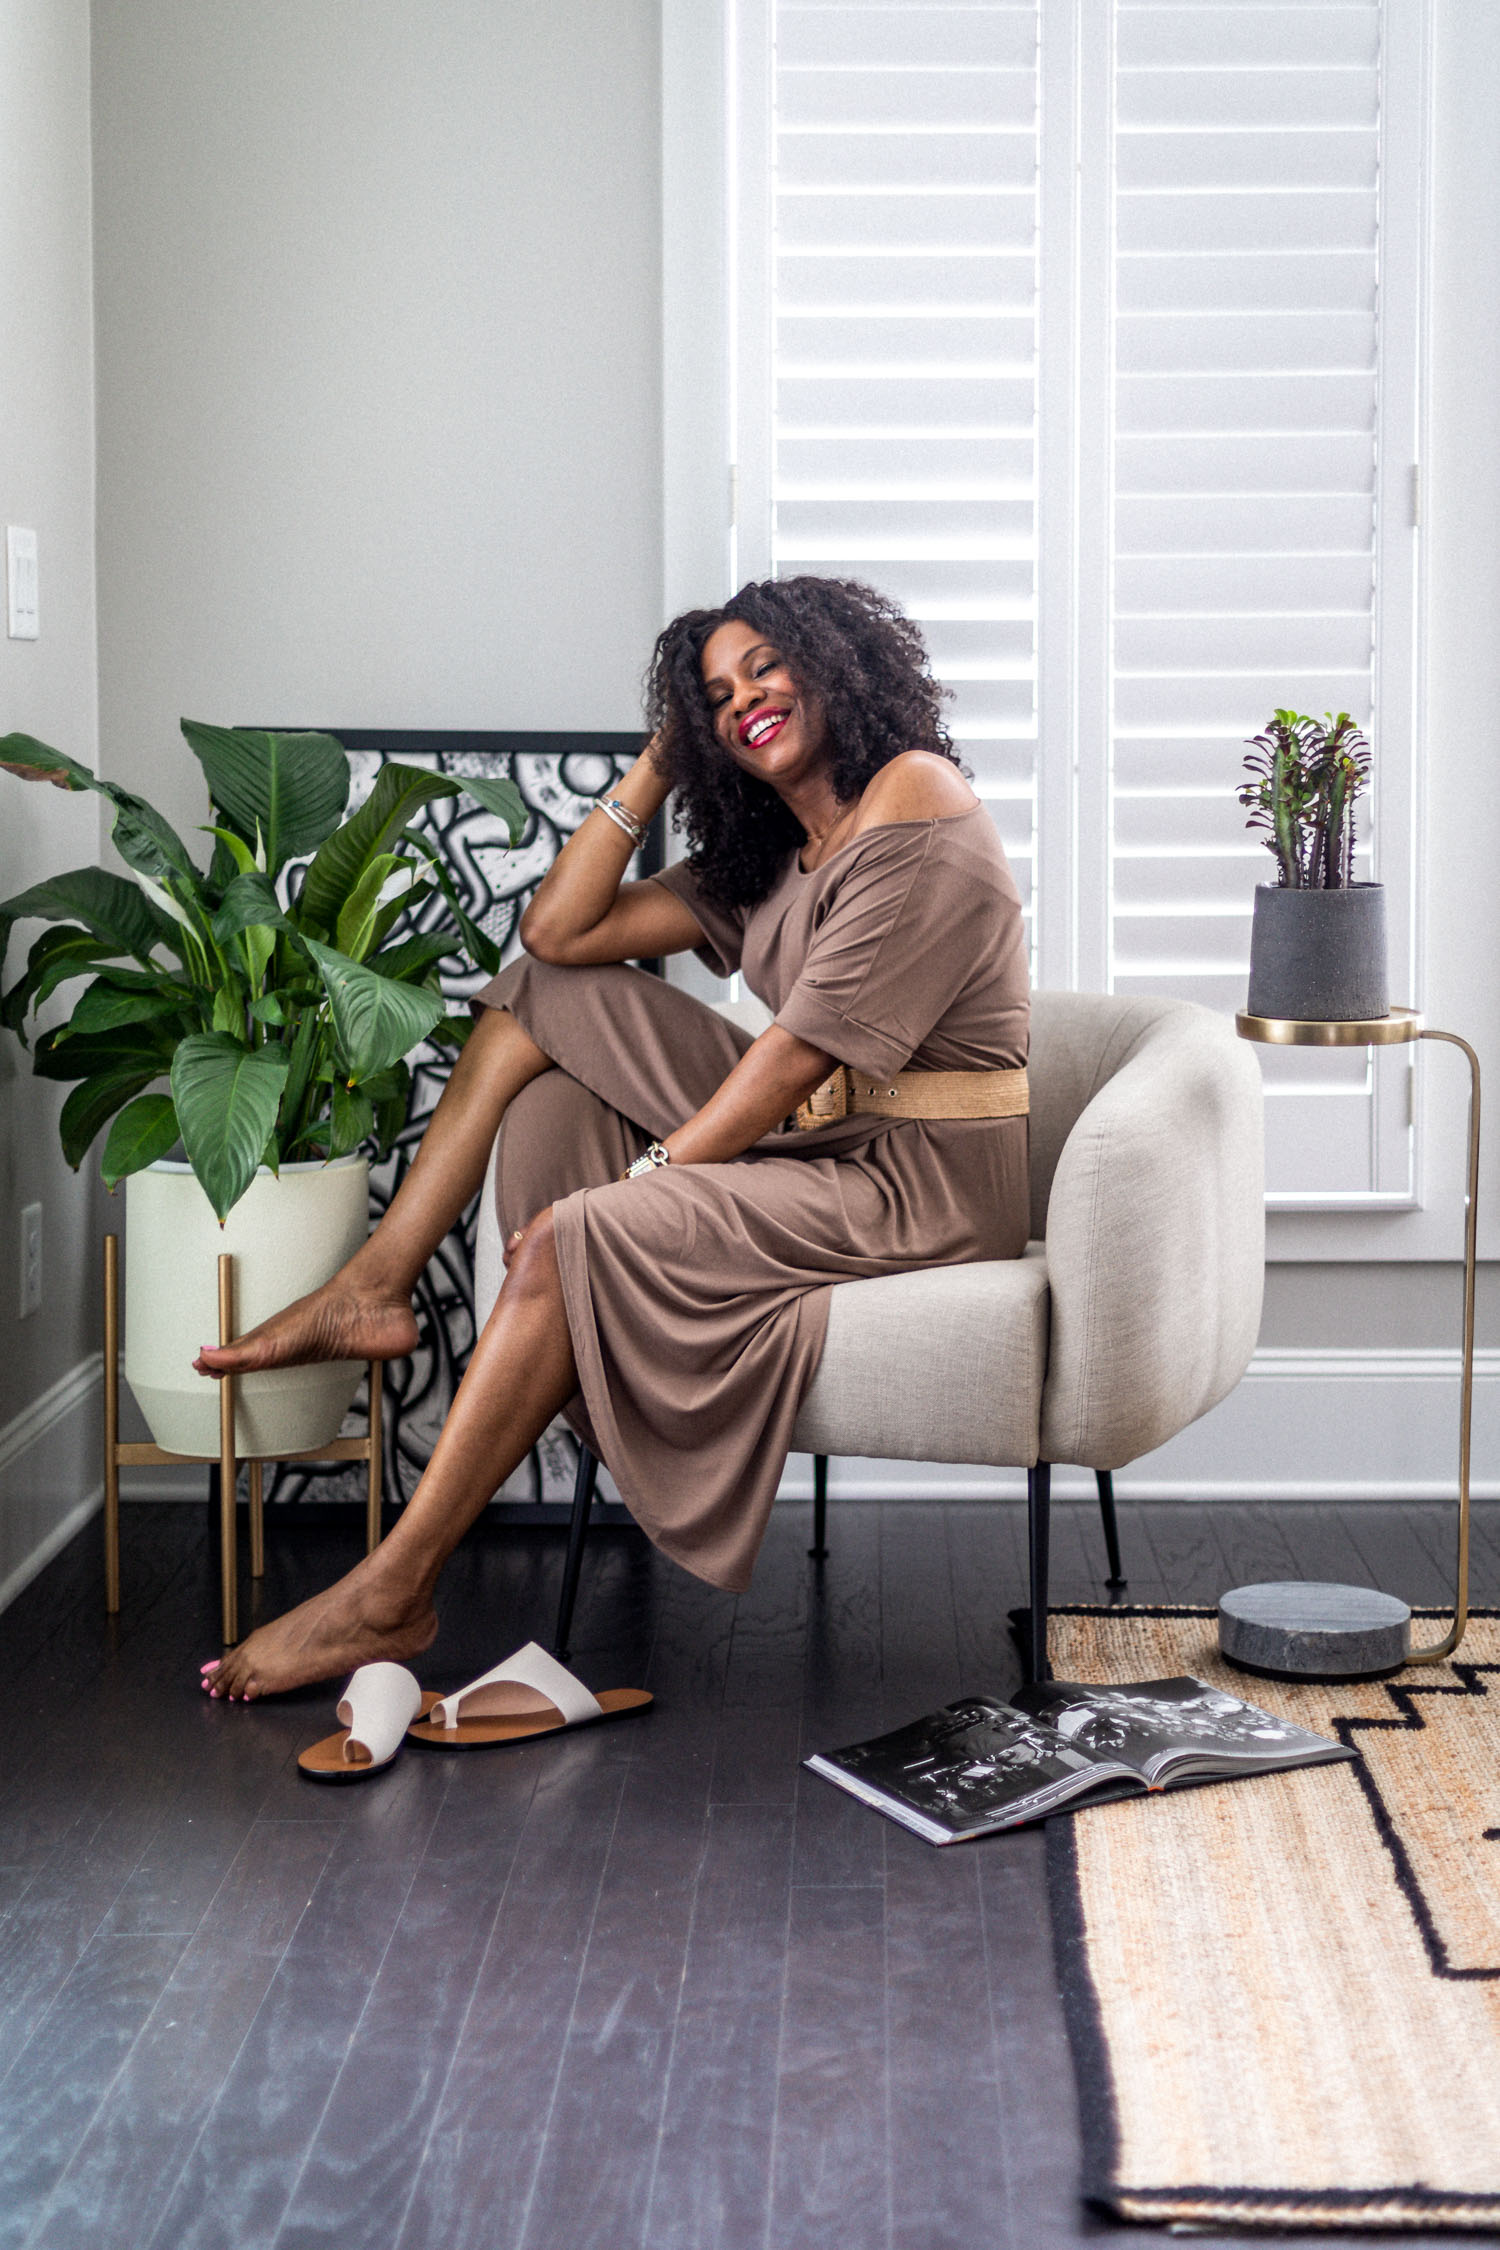 atlanta fashion blogger wearing loungewear dresses for summer, how to style your loungewear, how to style a loungewear dress, loungewear, how to look cute in loungewear, the best loungewear to wear at home, wrap dress, outfit inspiration, loungewear outfit inspiration